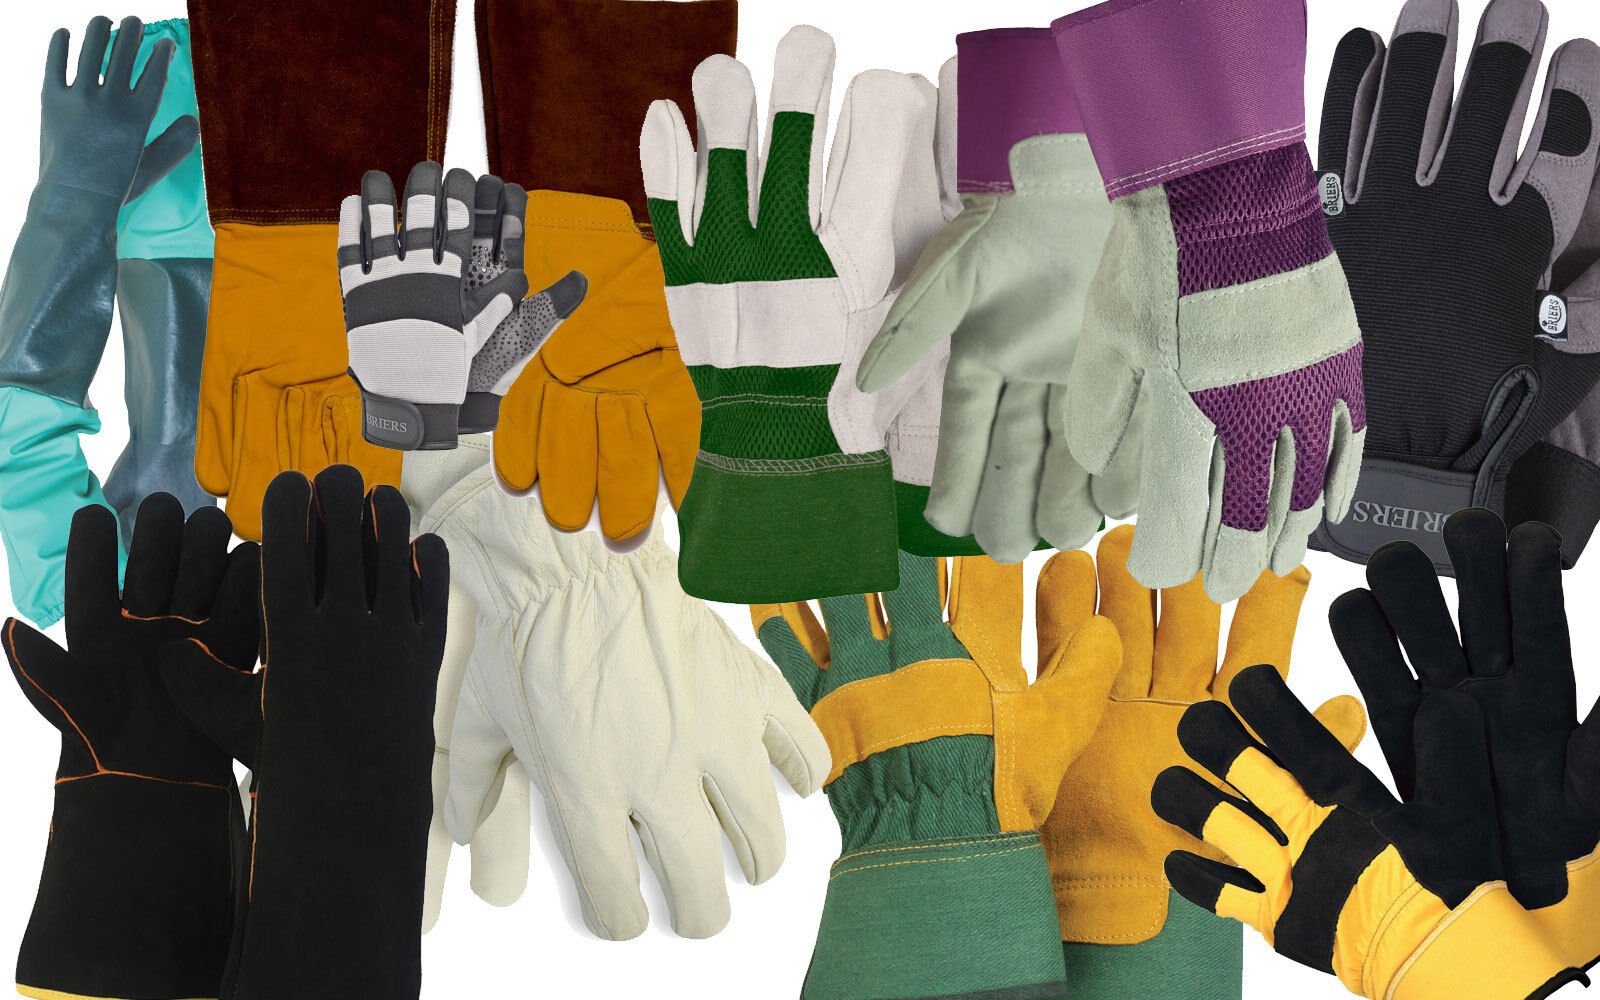 Briers Mens Professional Thermal Silicone Garden Gardening Work Gloves Large